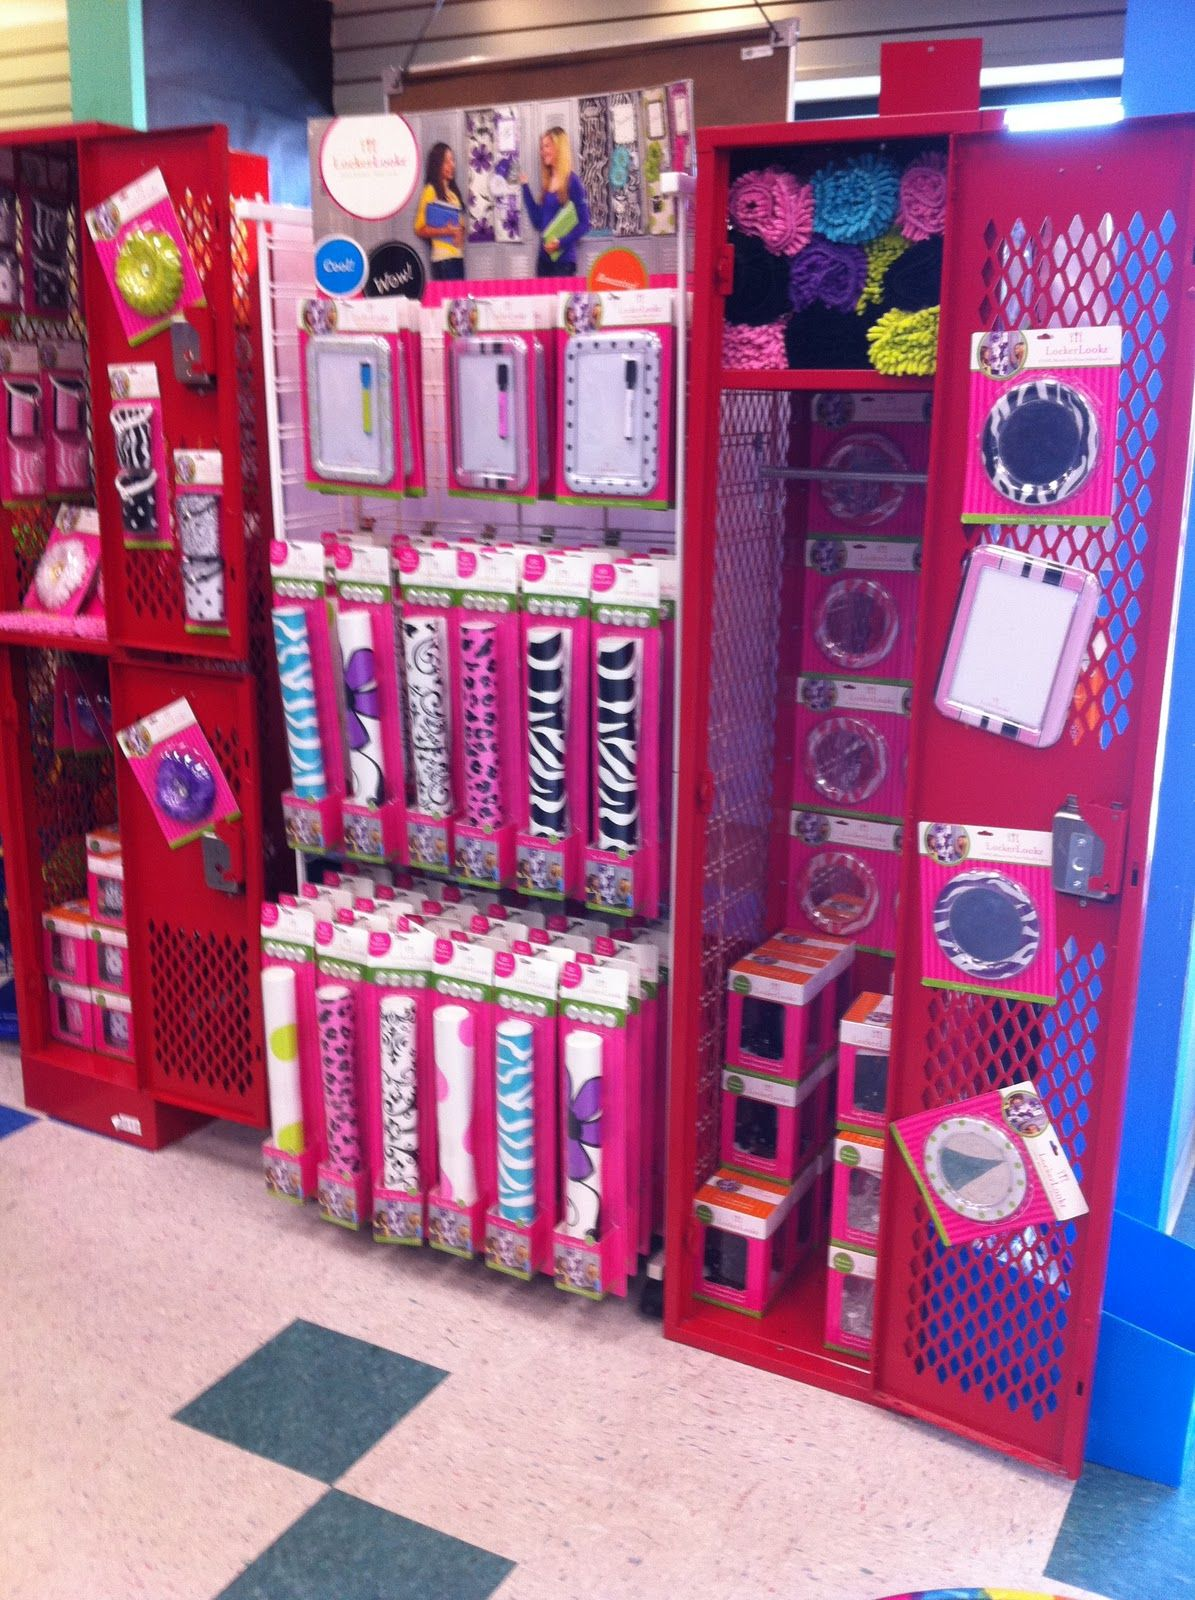 Diy Locker Decor Ideas Decoration For Kids Fit Furniture Plans Pictures Classroom Metalic And School Locker Decorations School Lockers Locker Decorations